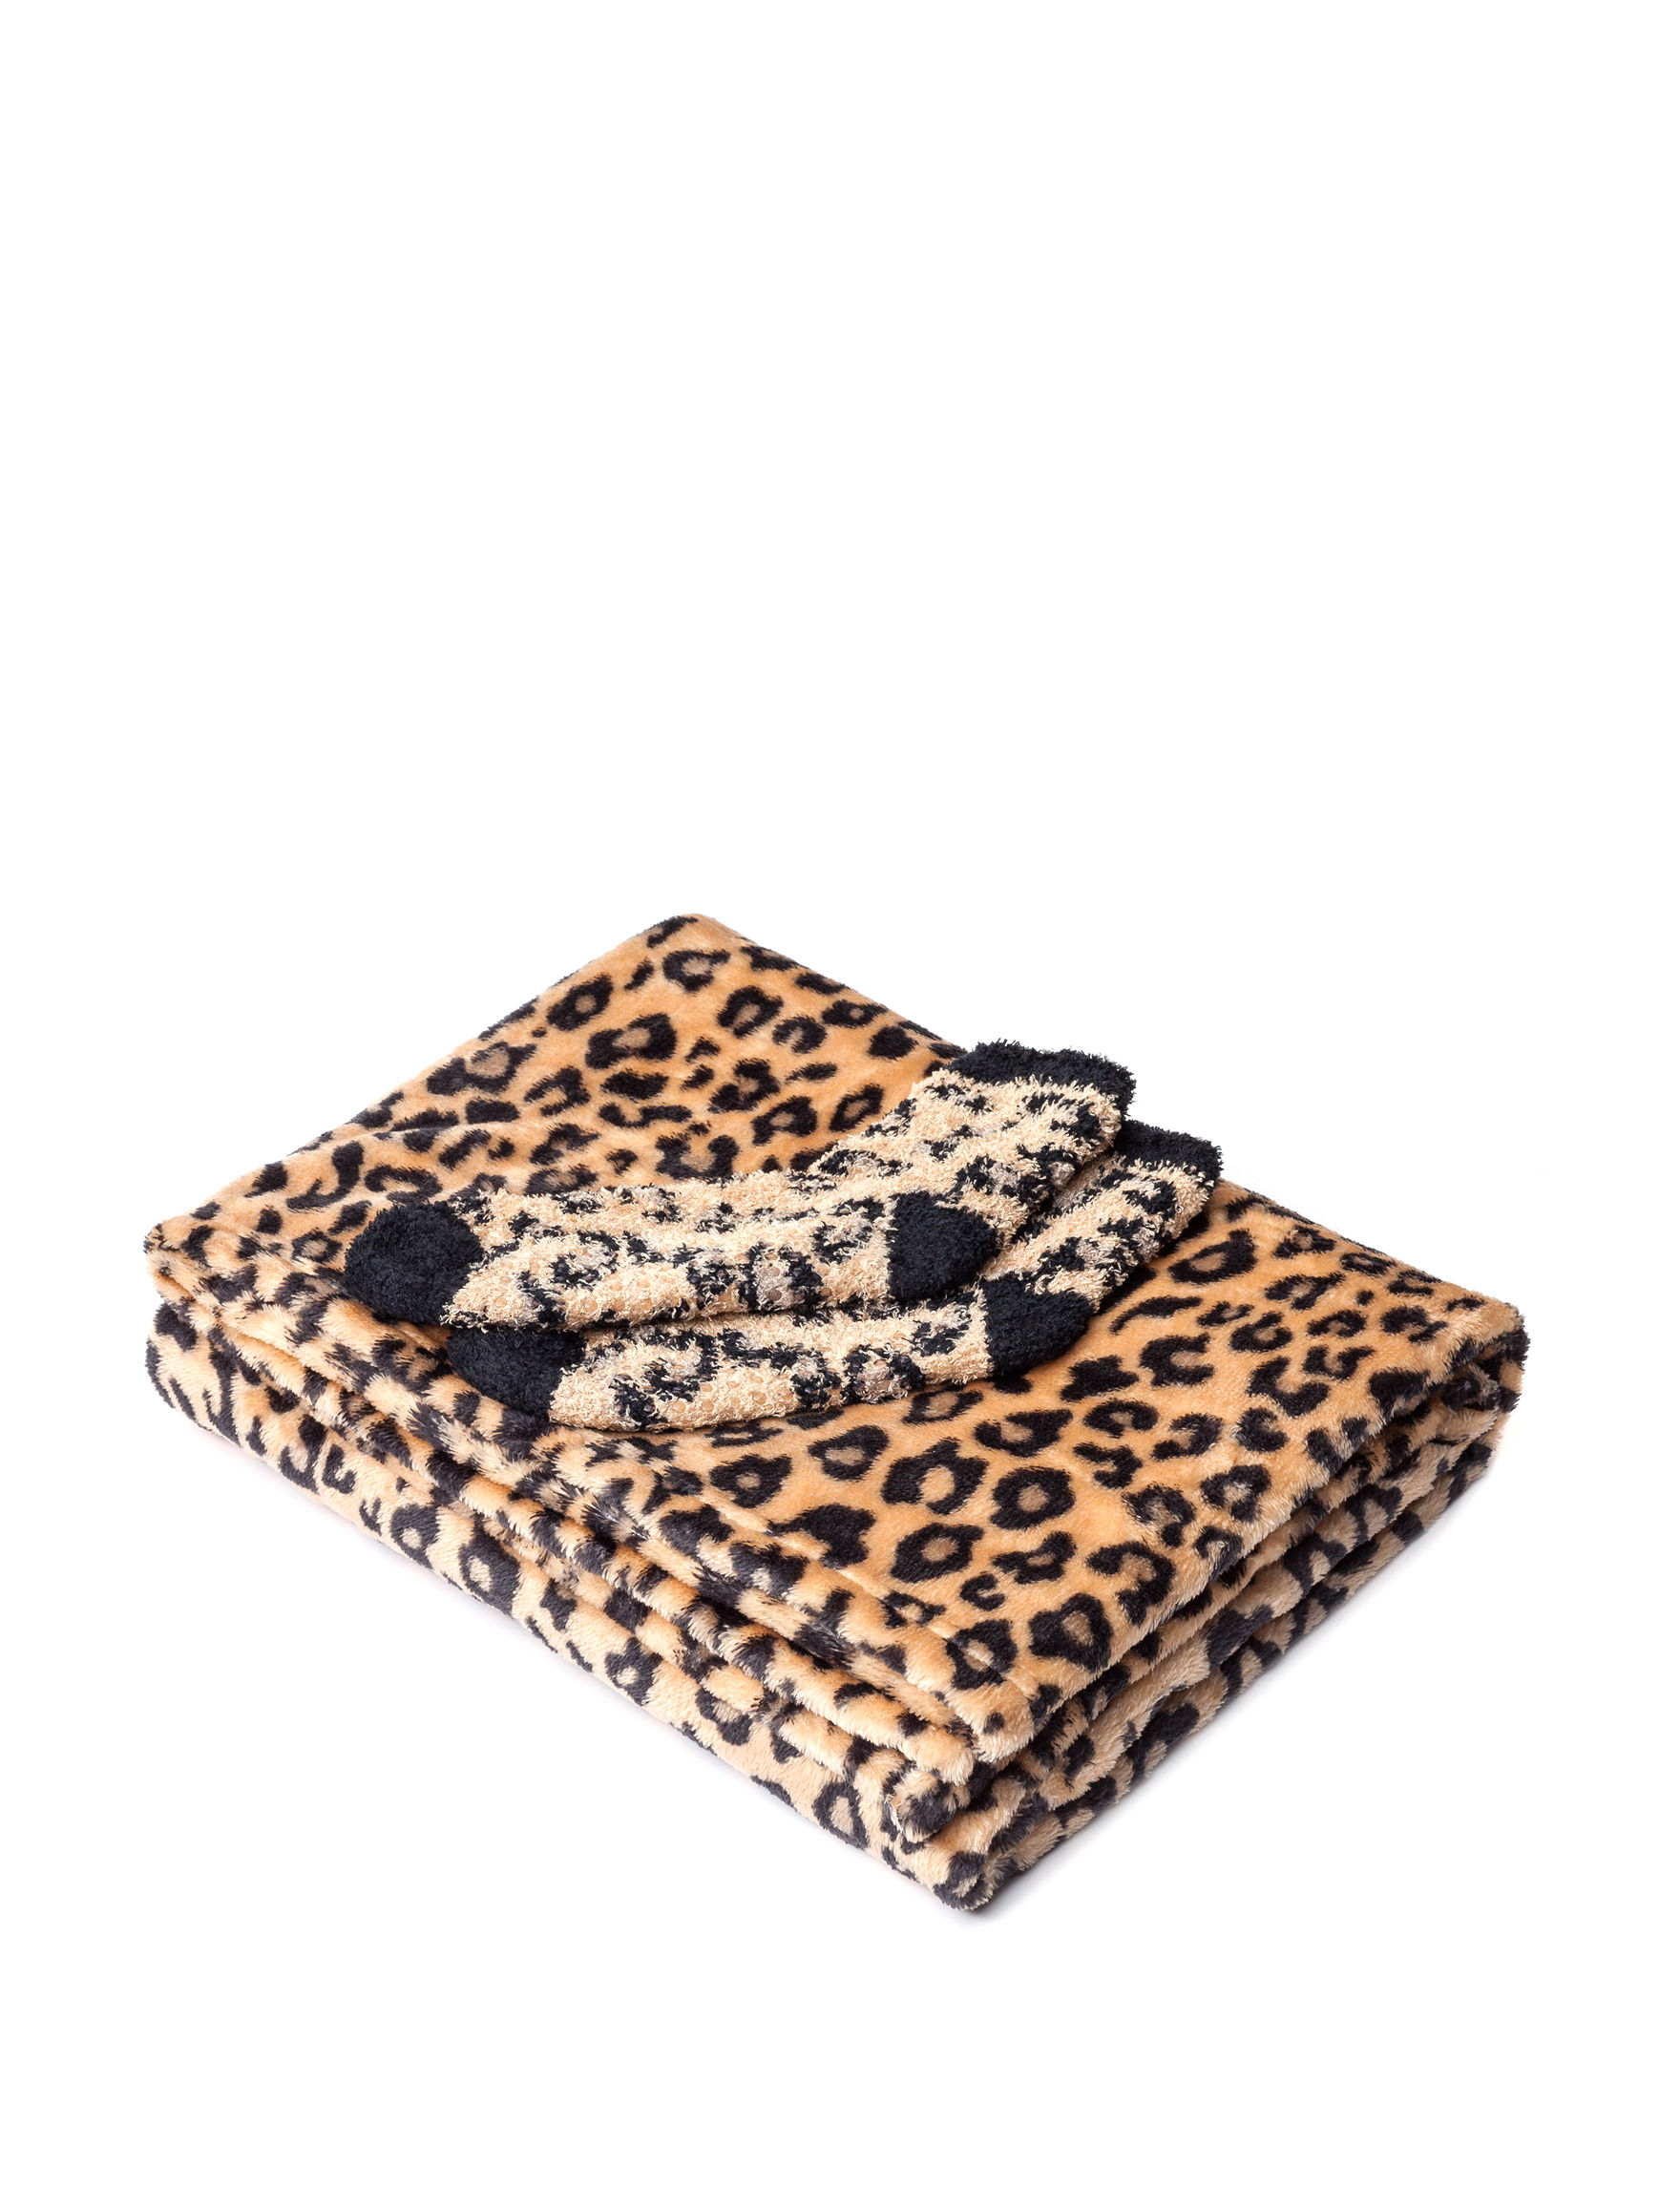 Great Hotels Collection Leopard Blankets & Throws